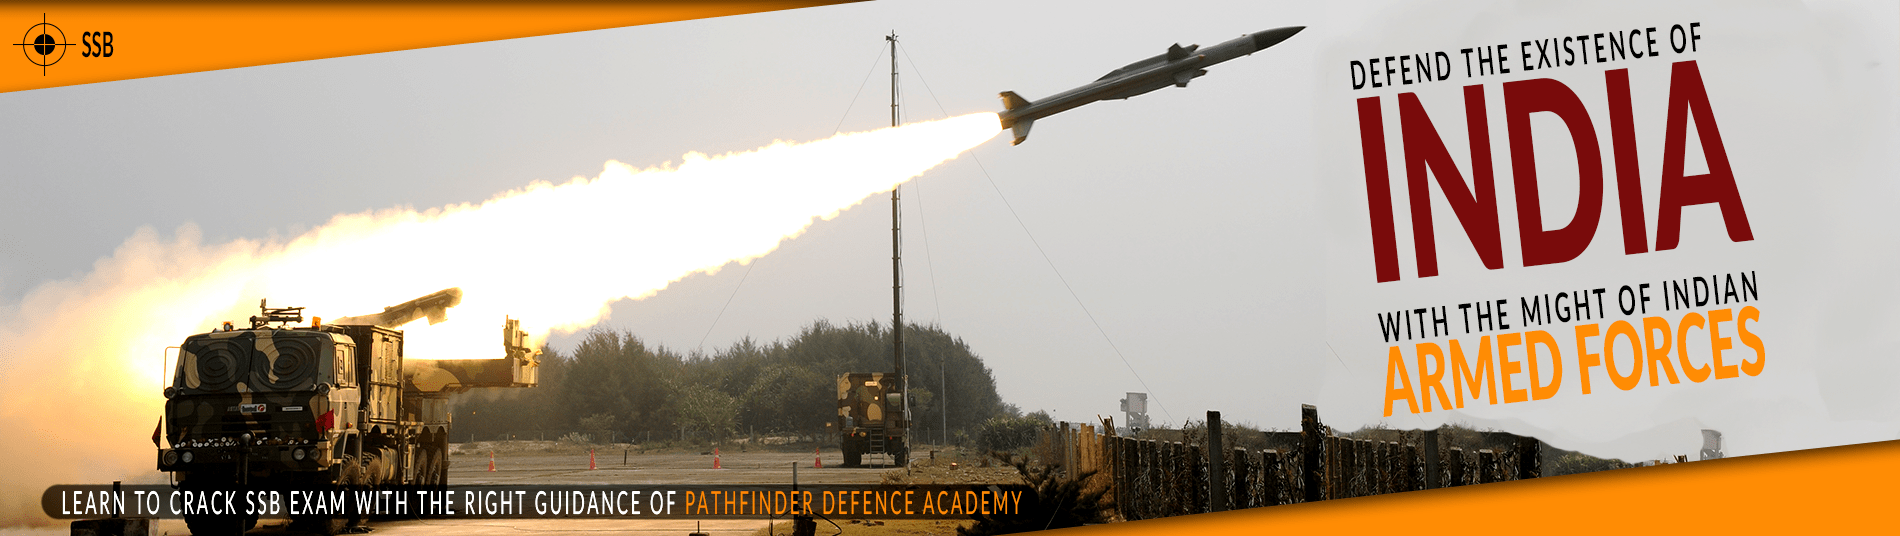 Pathfinder Defence Academy Lucknow